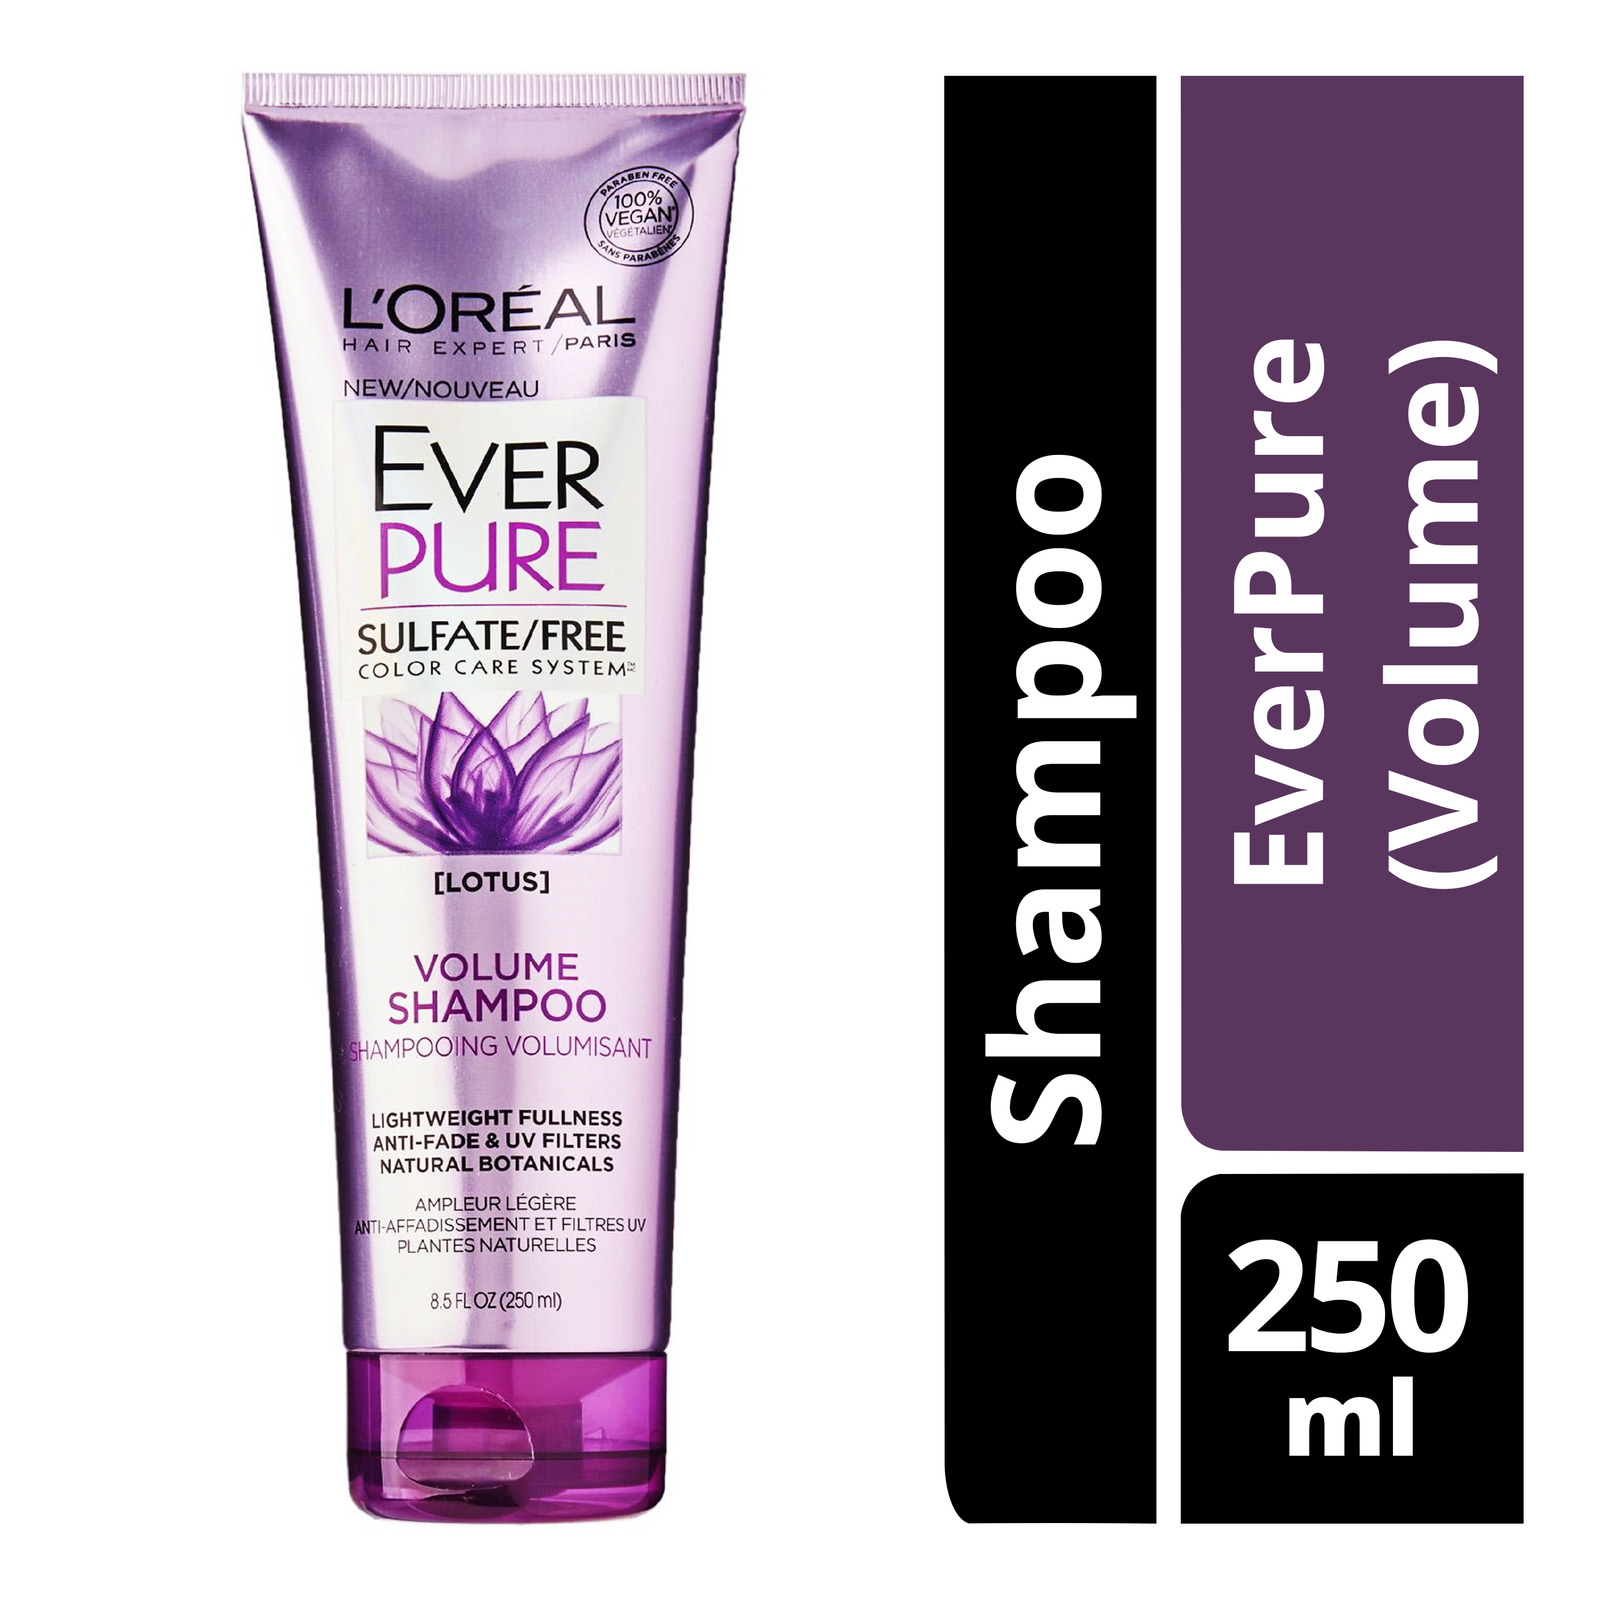 L'Oreal Paris Shampoo - EverPure (Volume)